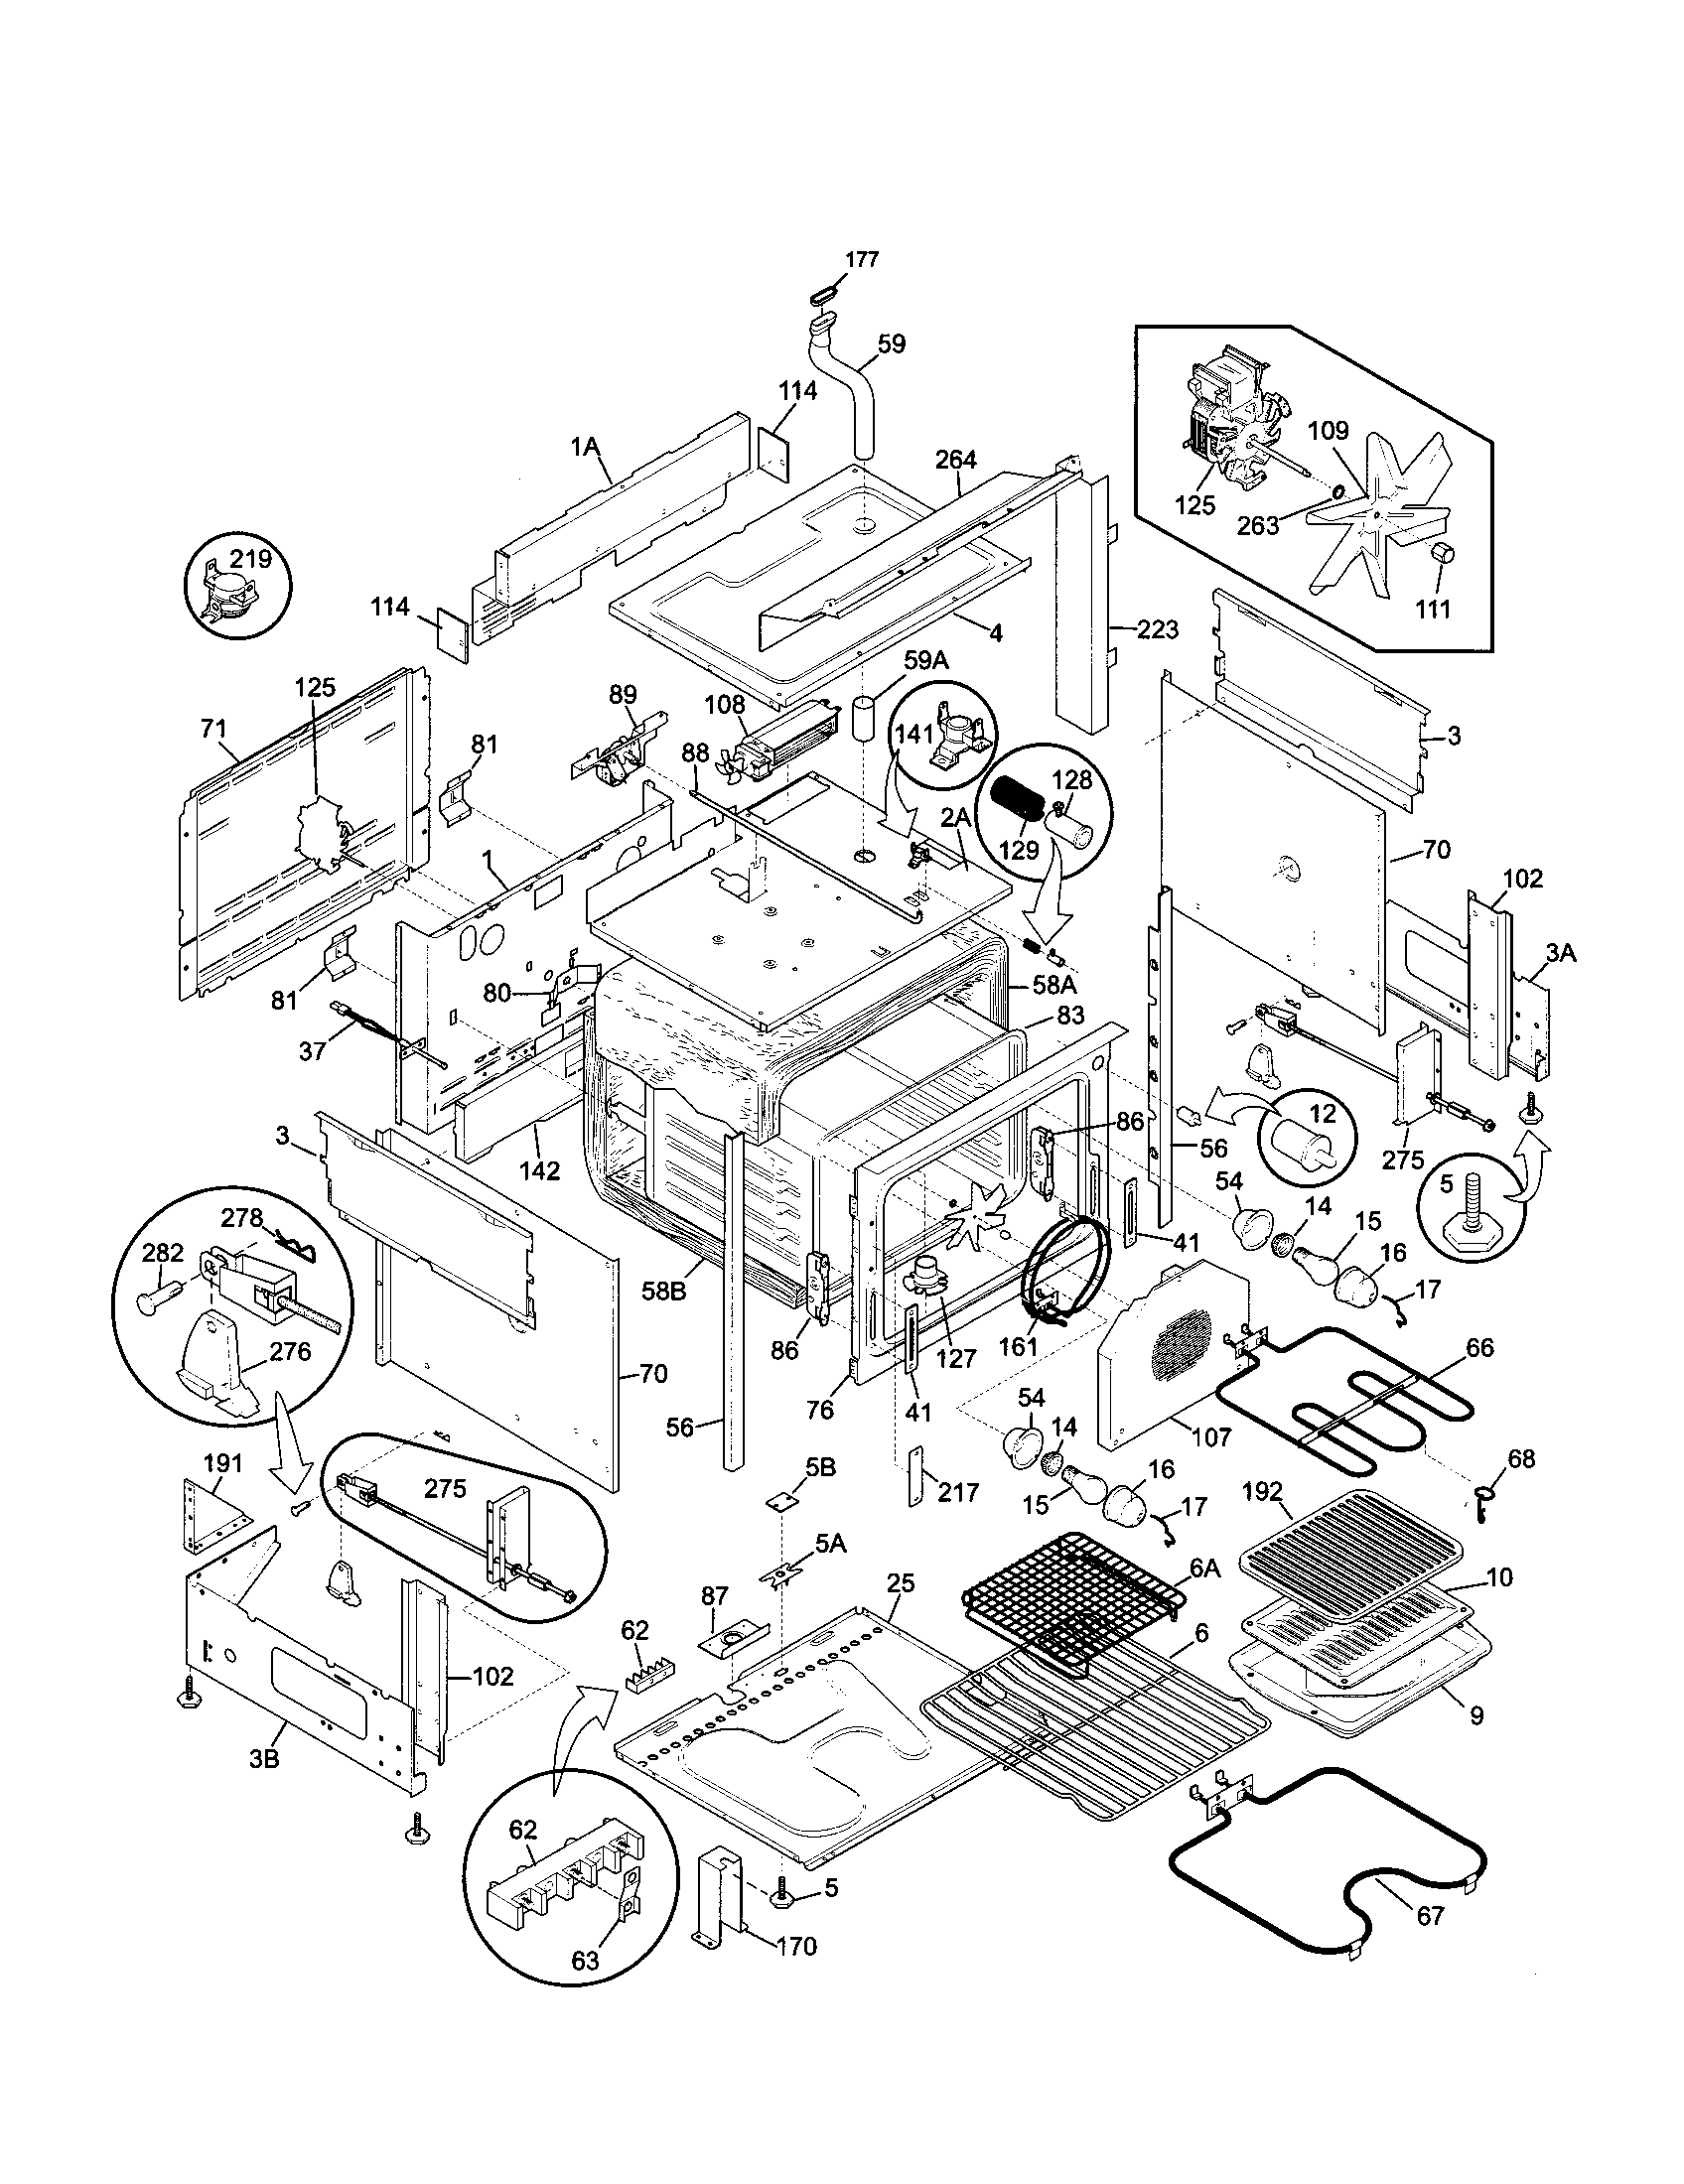 Kenmore Washer Model 110 Diagram